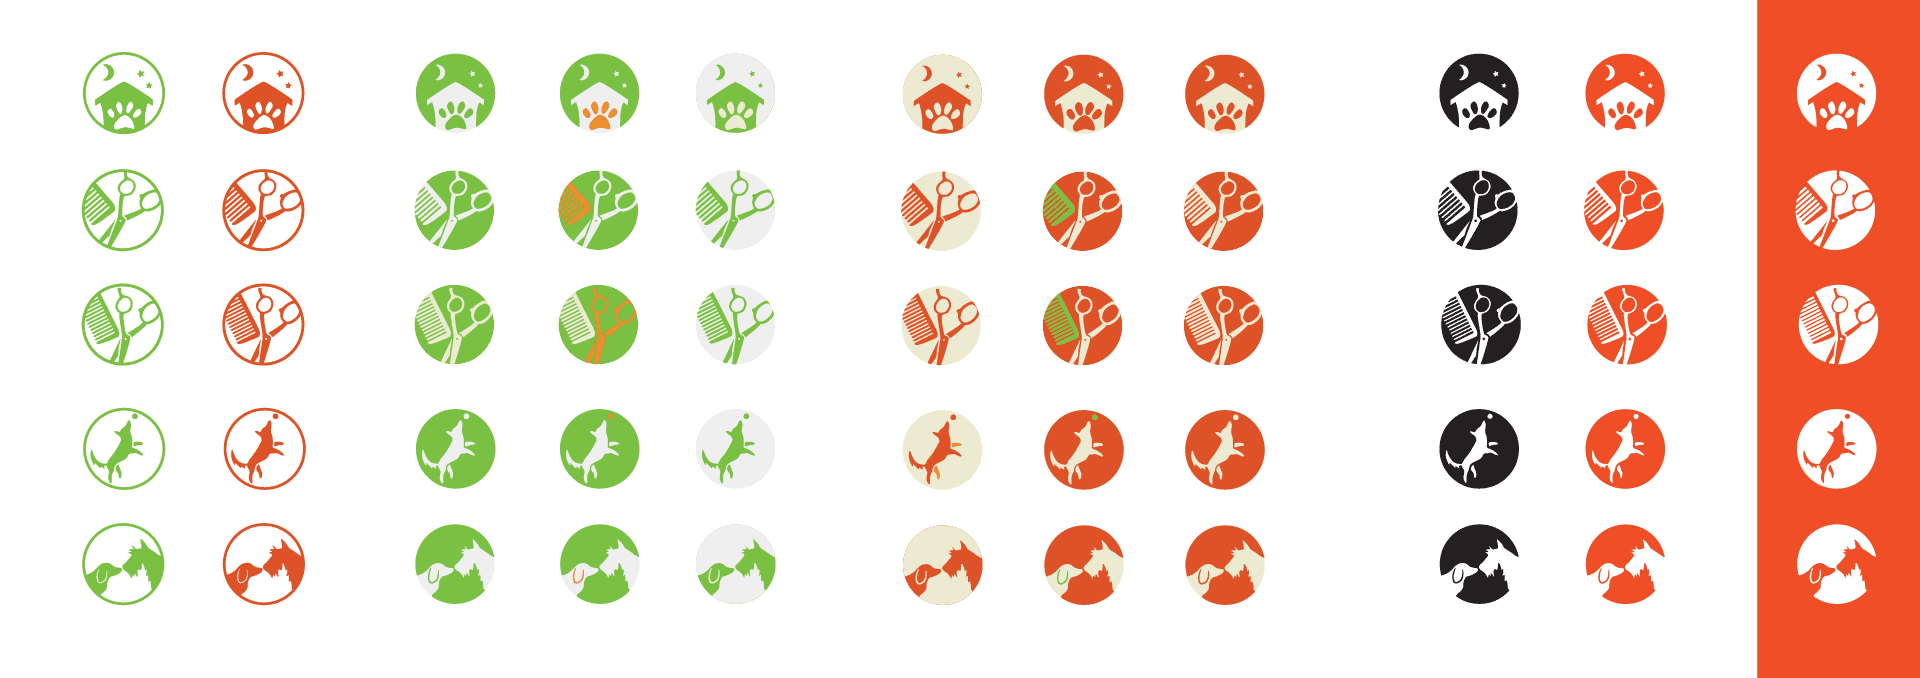 DogCity icon sheet